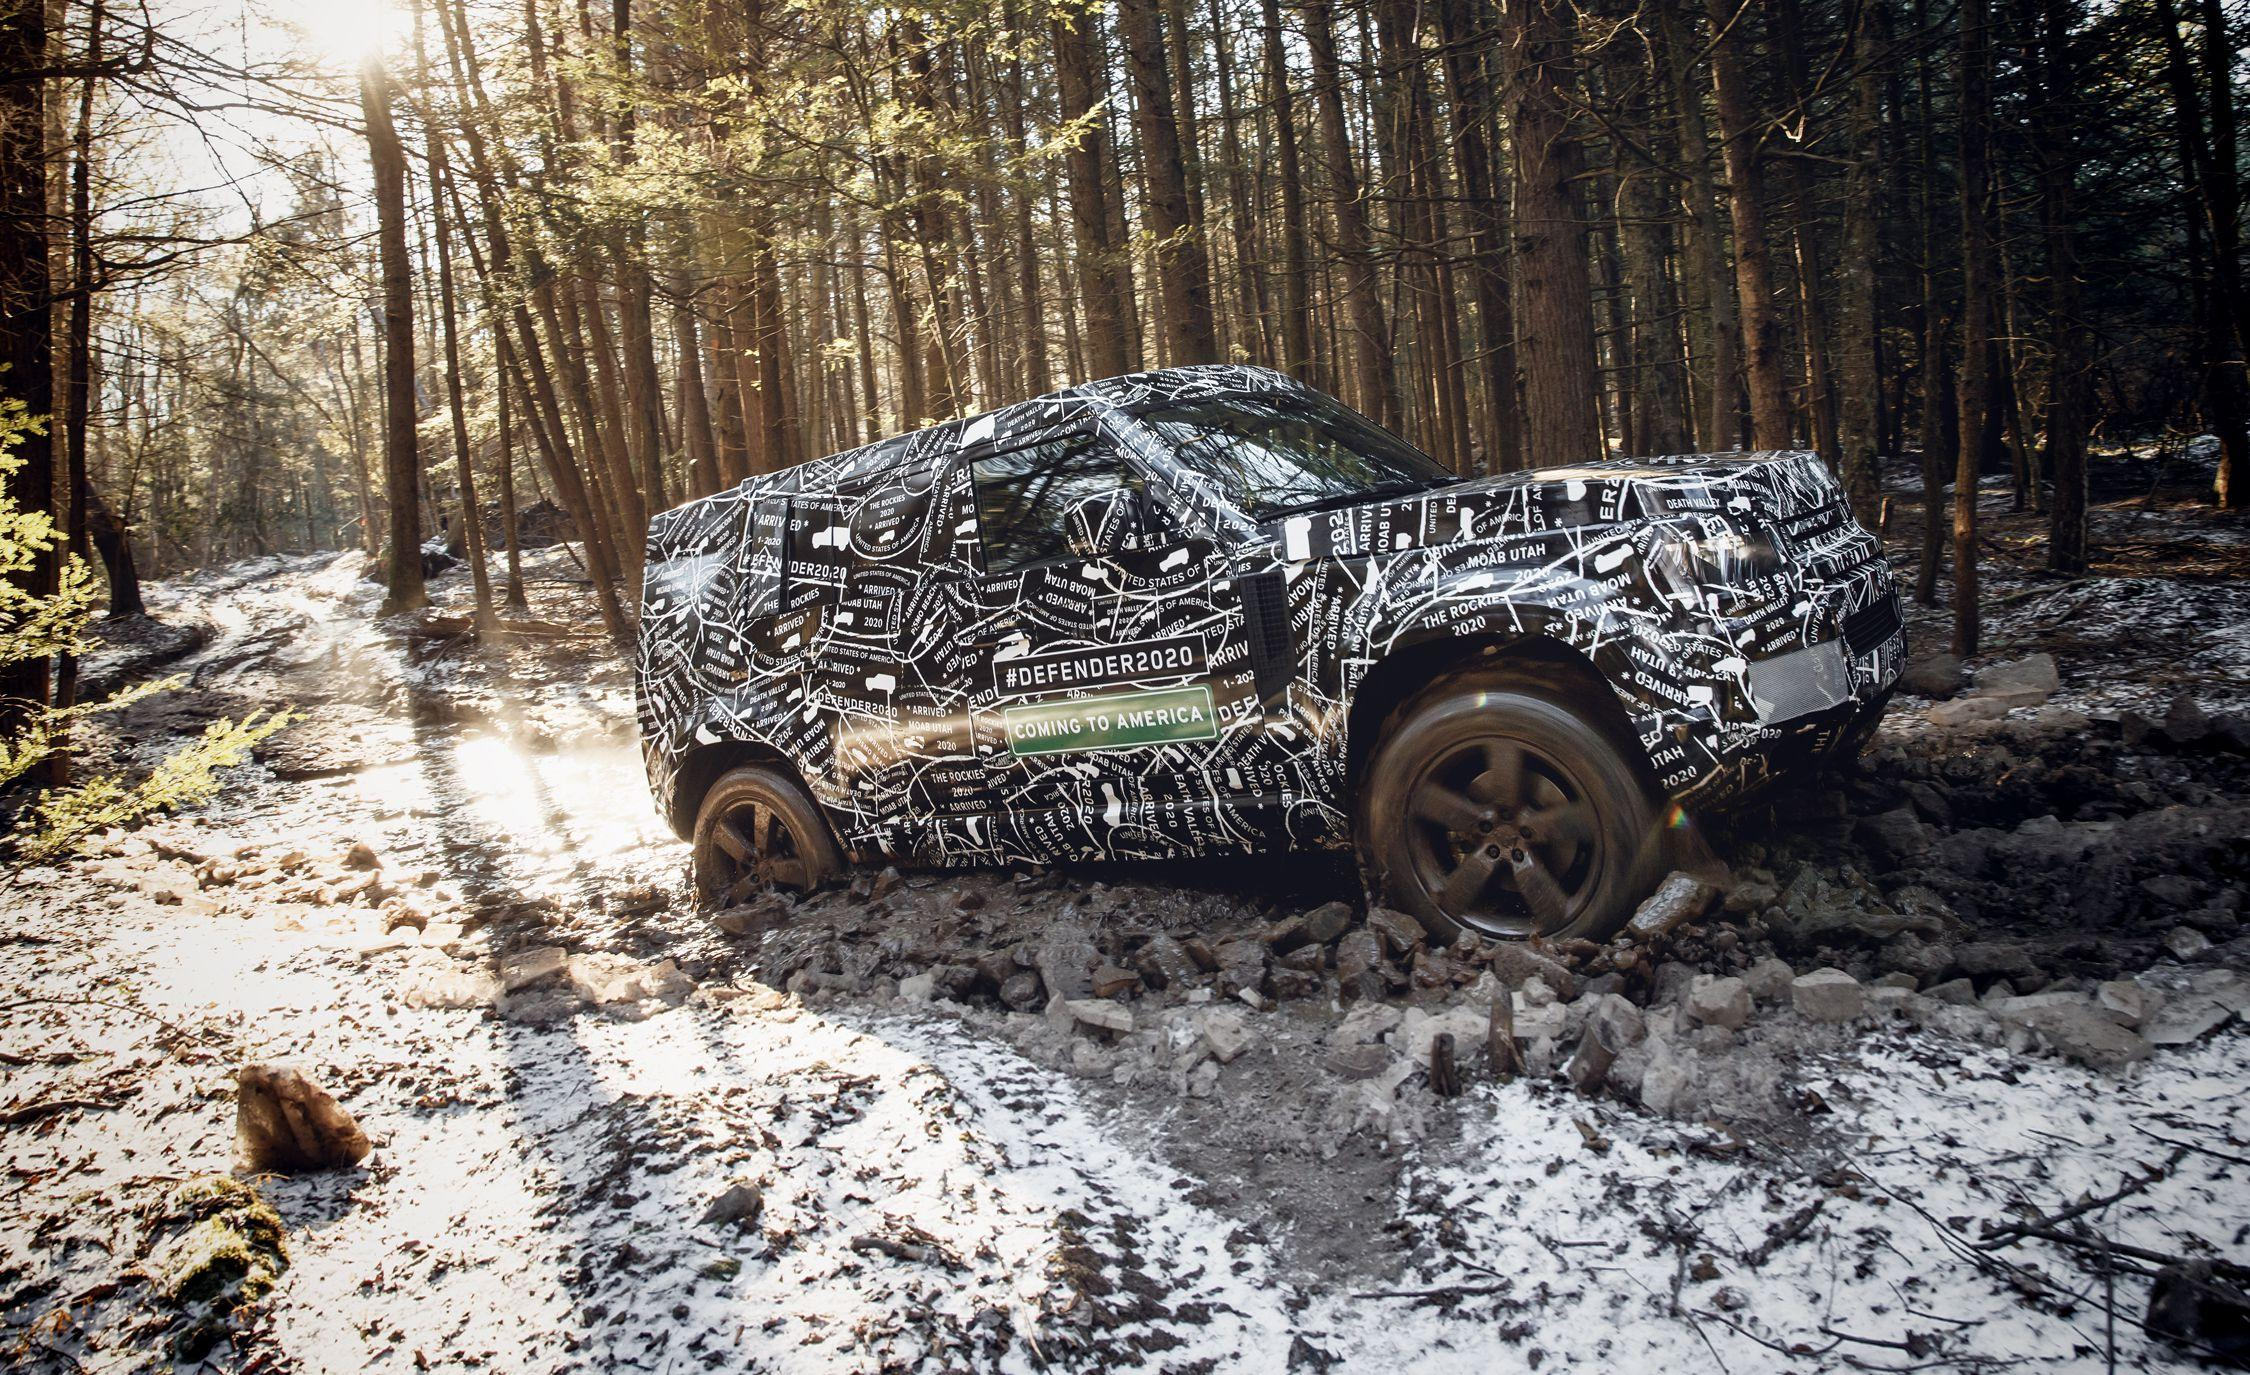 """<p>At the beginning 0f 2016, after 68 years of production, the final <a href=""""https://www.caranddriver.com/land-rover/defender"""" rel=""""nofollow noopener"""" target=""""_blank"""" data-ylk=""""slk:Land Rover Defender"""" class=""""link rapid-noclick-resp"""">Land Rover Defender</a> (née Series I, II, and III) rolled off the assembly line in Solihull, England. But well before that happened, we knew that Land Rover was working on a successor to the iconic model. Now, following multiple concepts, years of speculation, and a bunch of spy photos, Land Rover has finally, officially announced that <a href=""""https://www.caranddriver.com/photos/g25009784/2020-land-rover-defender-suv-future-spied/"""" rel=""""nofollow noopener"""" target=""""_blank"""" data-ylk=""""slk:the all-new Defender"""" class=""""link rapid-noclick-resp"""">the all-new Defender</a> will be revealed at some point in 2019.</p>"""